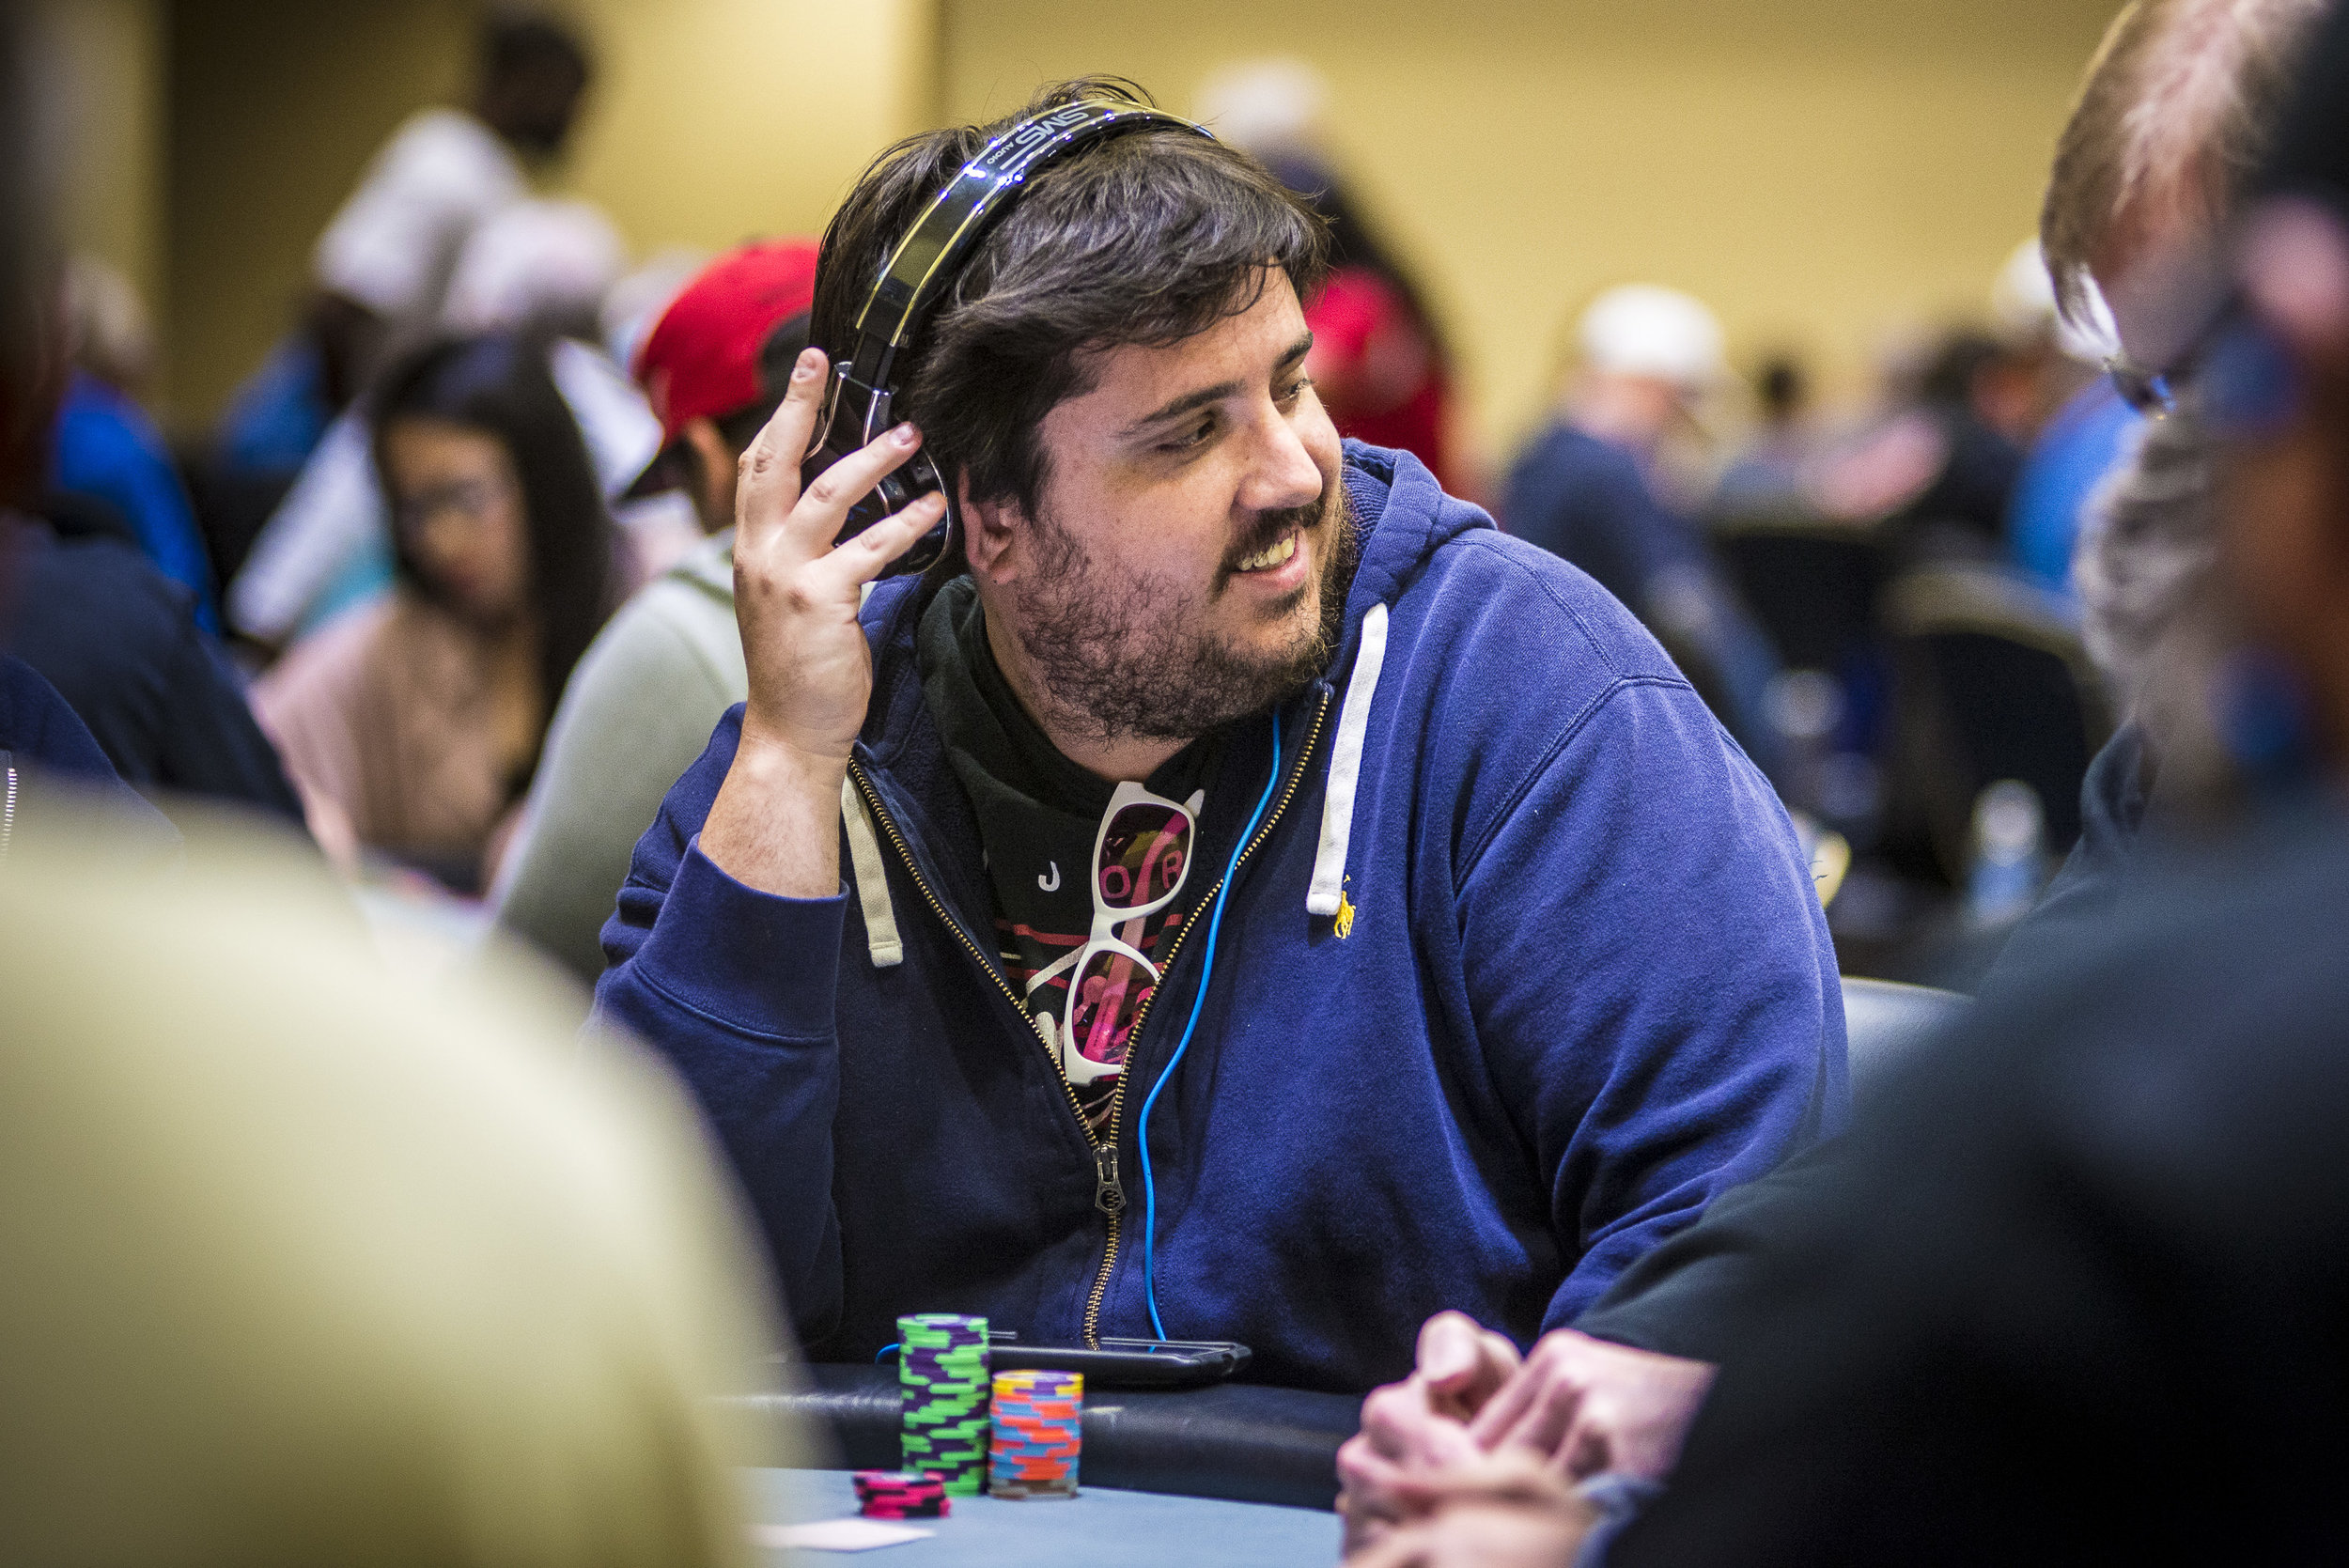 WPTDeepStacks_David Tuthill_Amato_AA47869.jpg